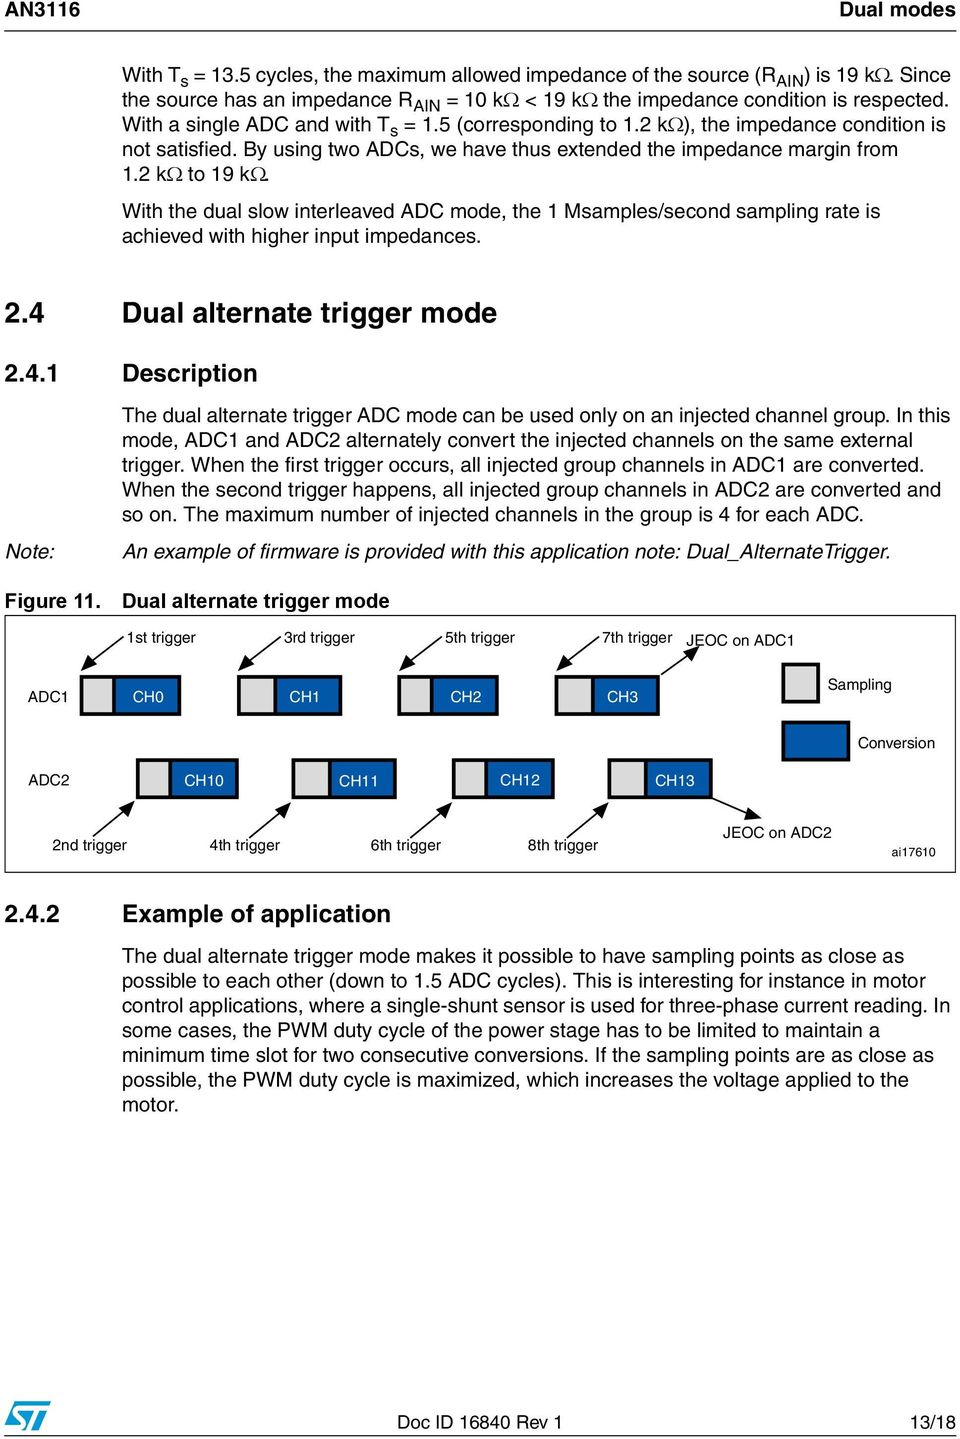 With the dual slow interleaved ADC mode, the 1 Msamples/second sampling rate is achieved with higher input impedances. 2.4 Dual alternate trigger mode 2.4.1 Description Note: Figure 11.